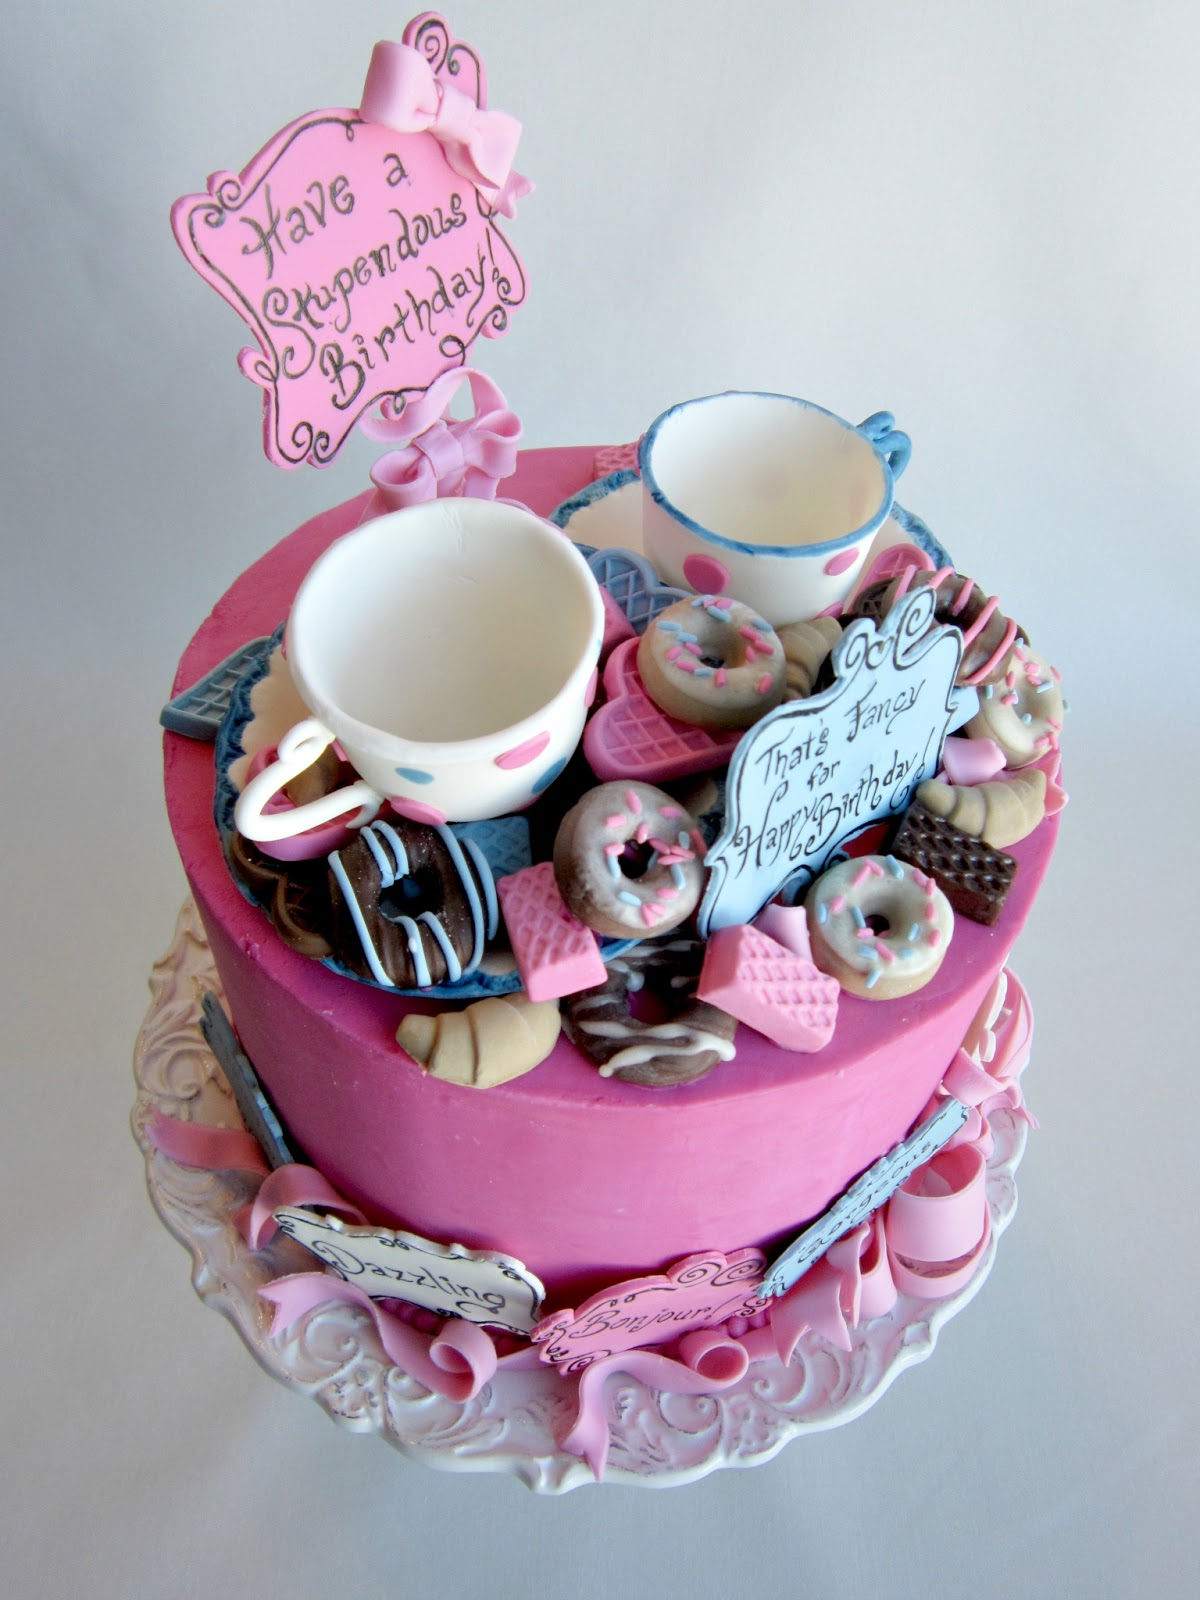 Delectable Cakes Most Stupendous Fancy Nancy Birthday Cake